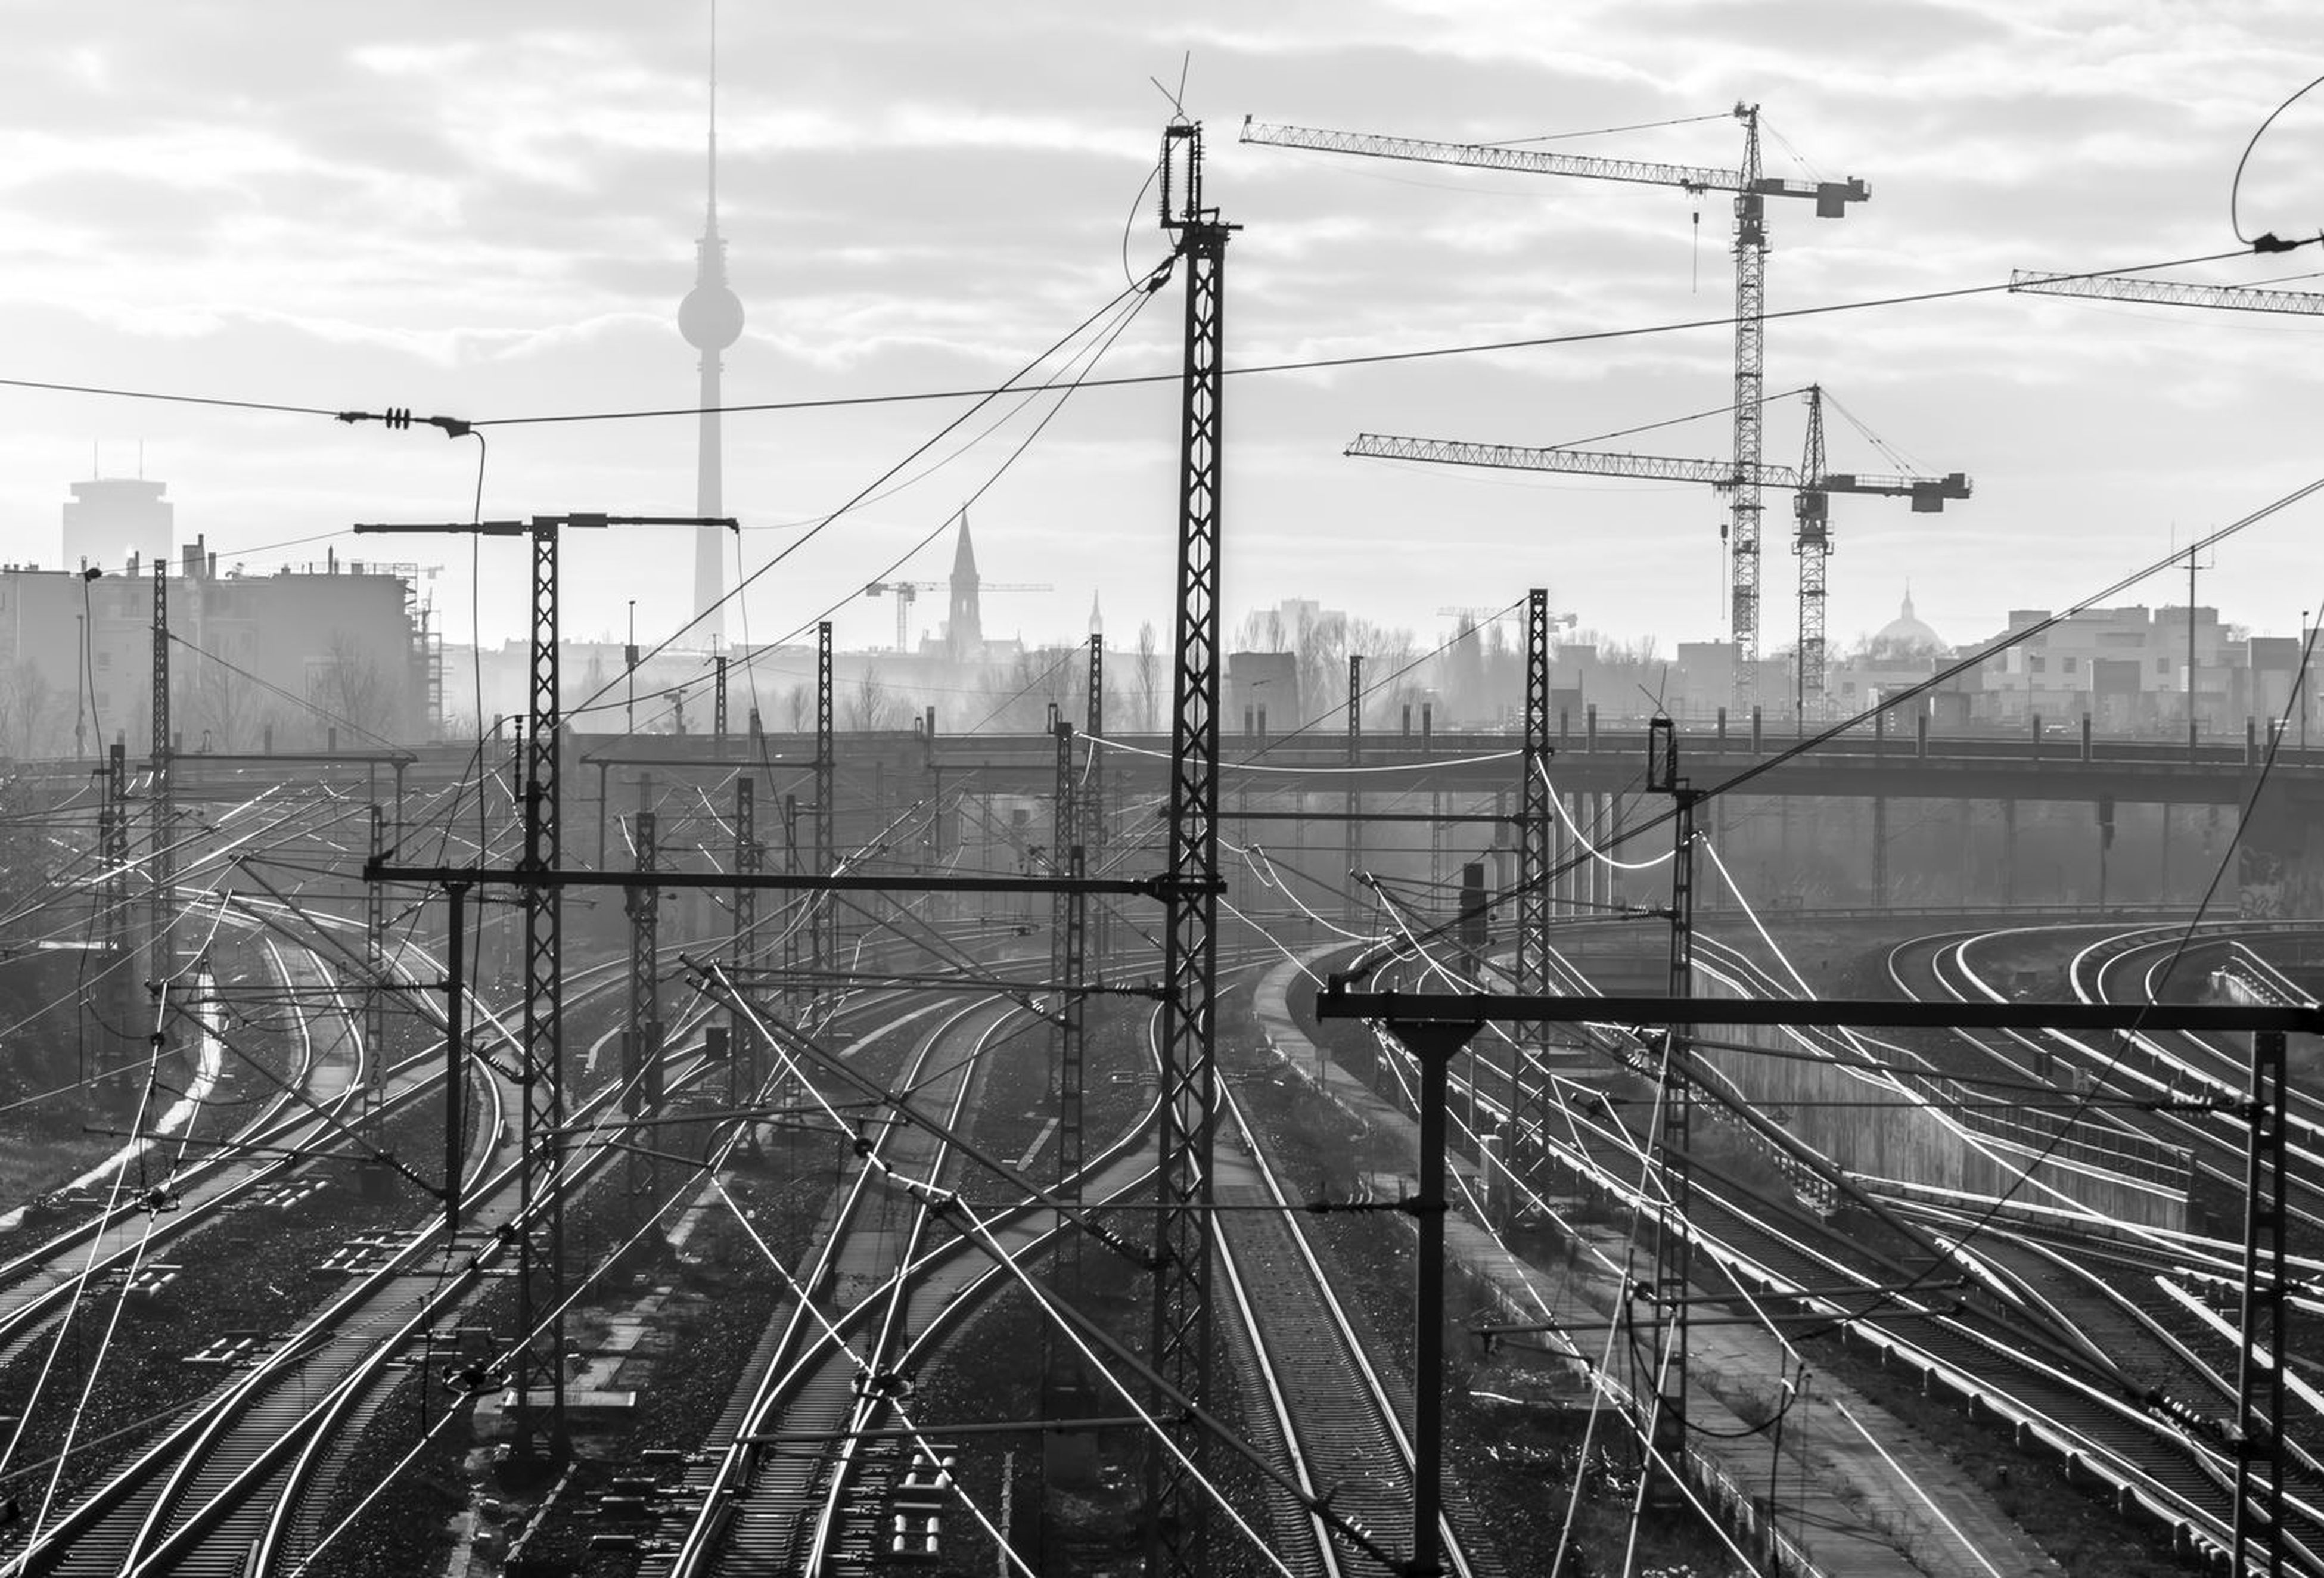 cable, electricity, power line, electricity pylon, sky, power supply, transportation, connection, fuel and power generation, outdoors, no people, building exterior, technology, cloud - sky, bridge - man made structure, city, built structure, day, business finance and industry, smoke - physical structure, suspension bridge, cityscape, architecture